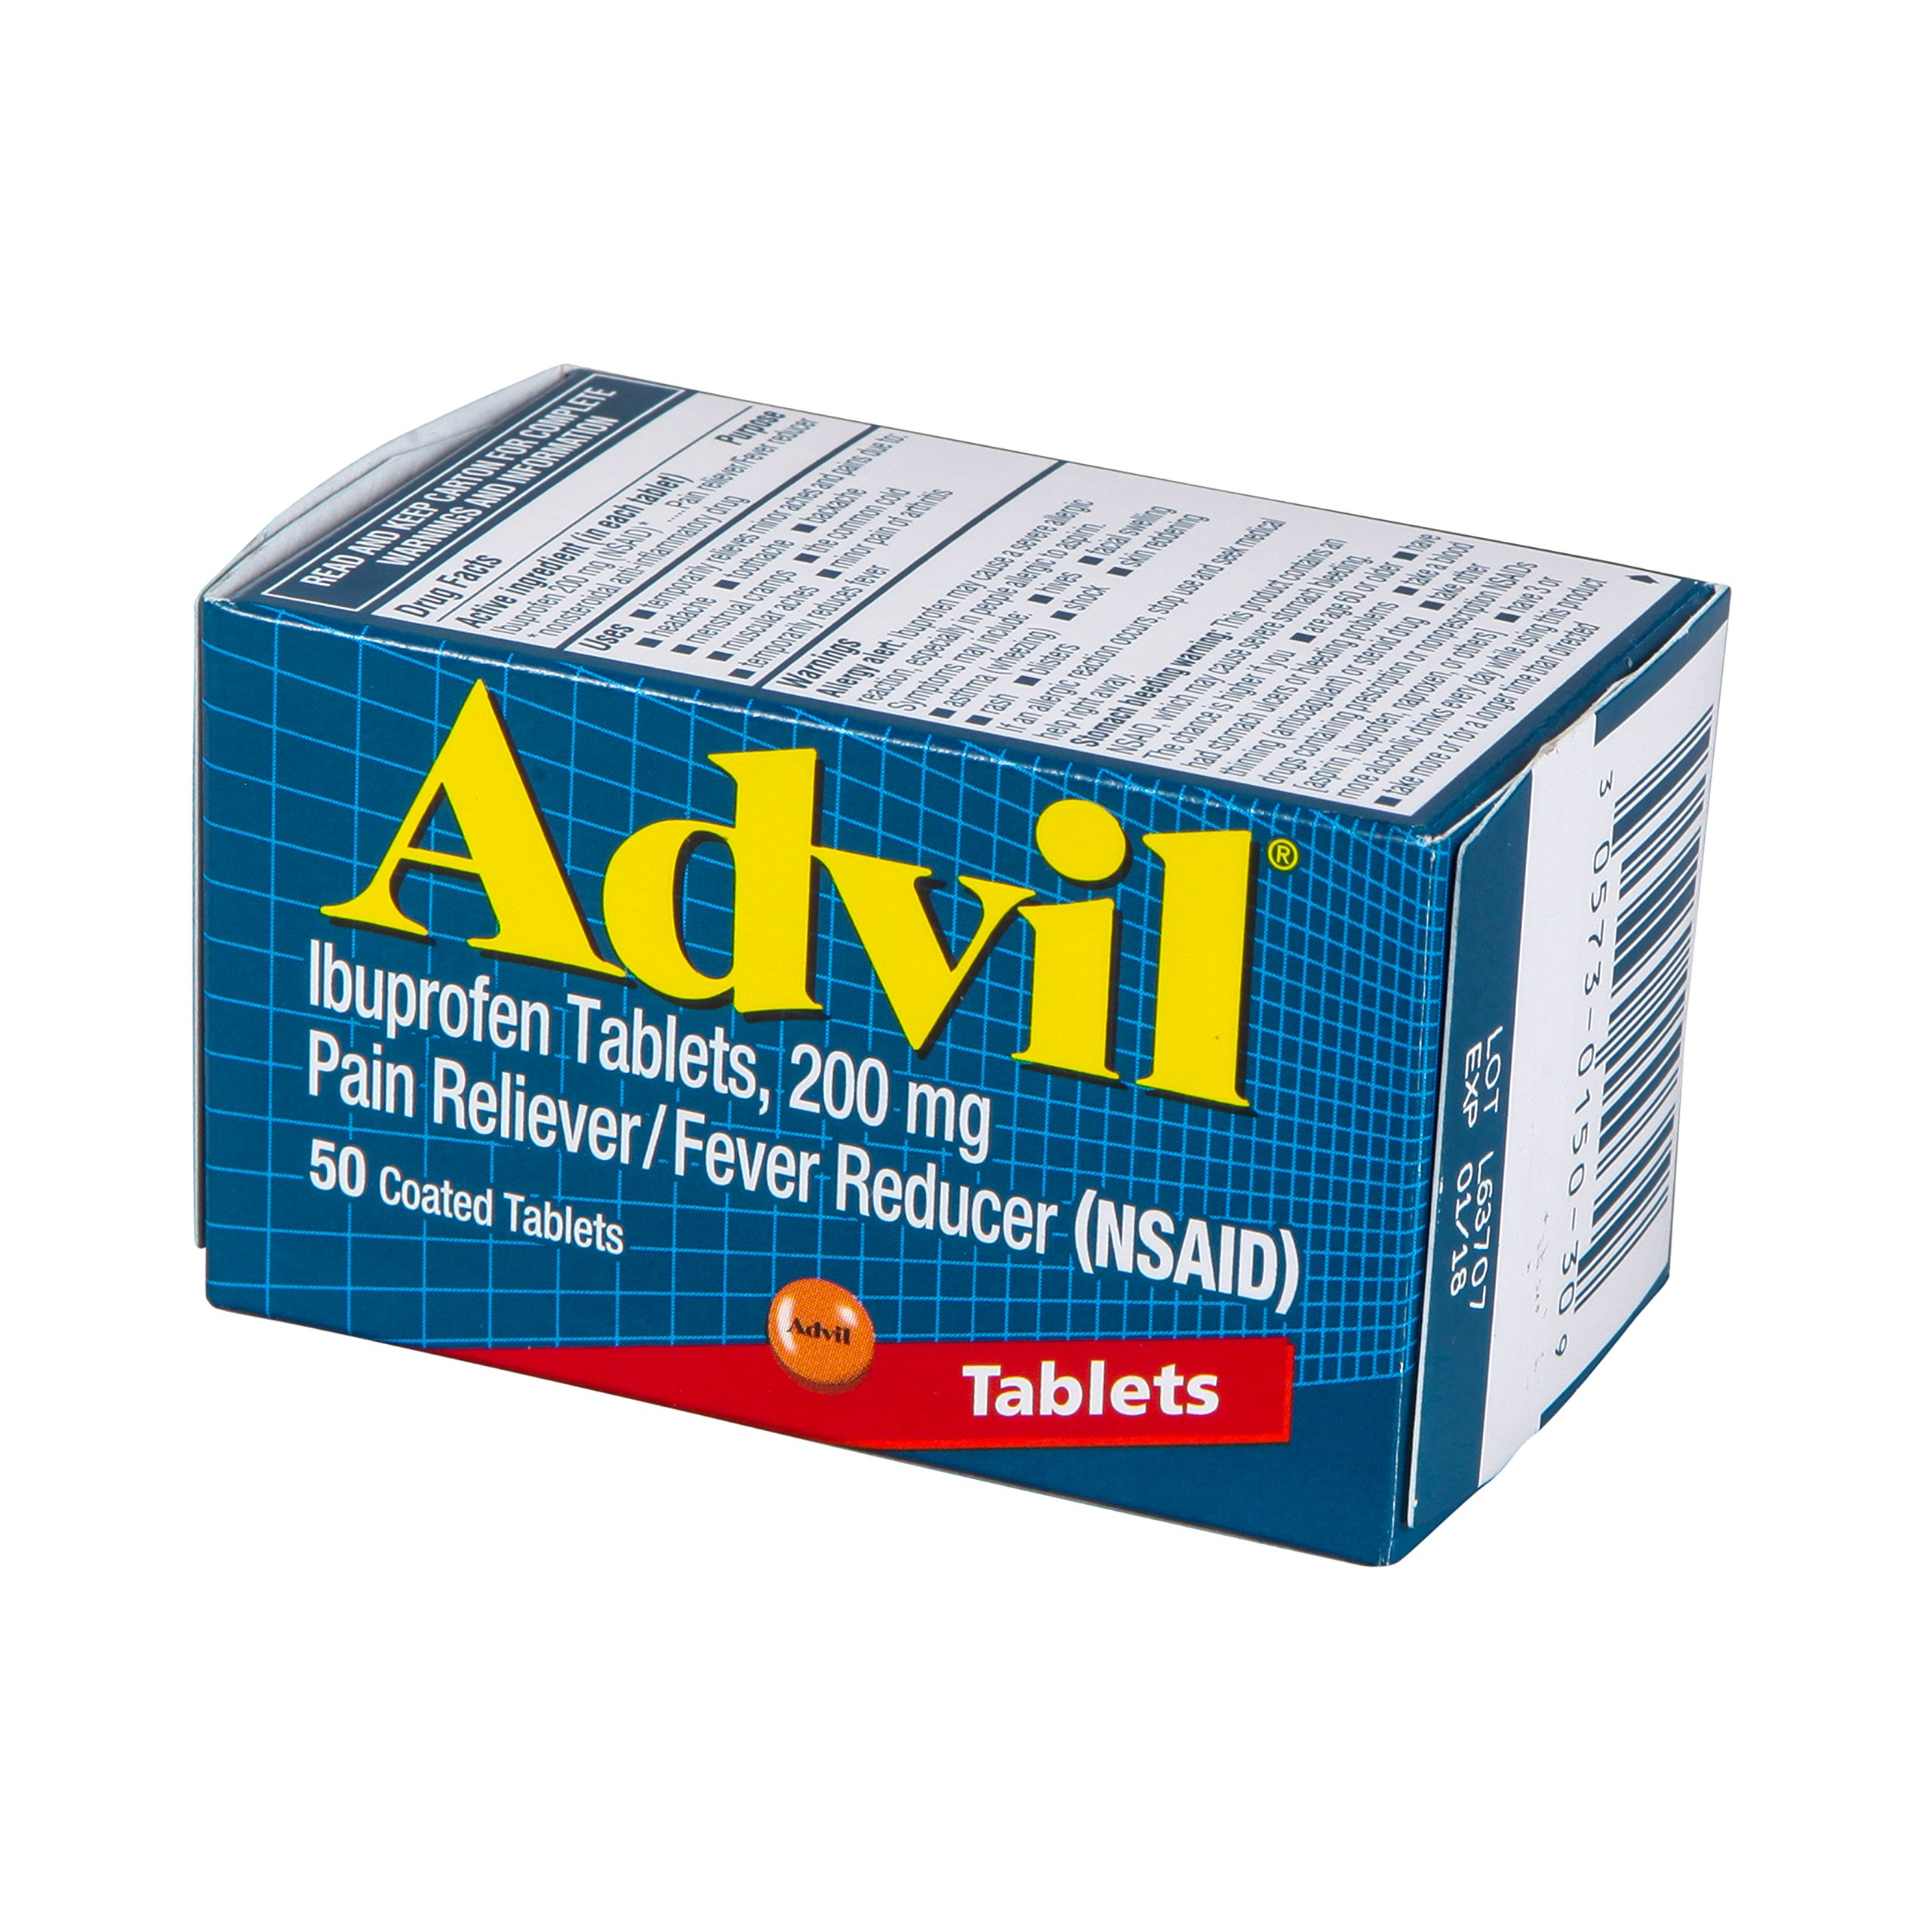 Advil Pain Reliever/Fever Reducer, 200 mg, 50 Coated Tablets.